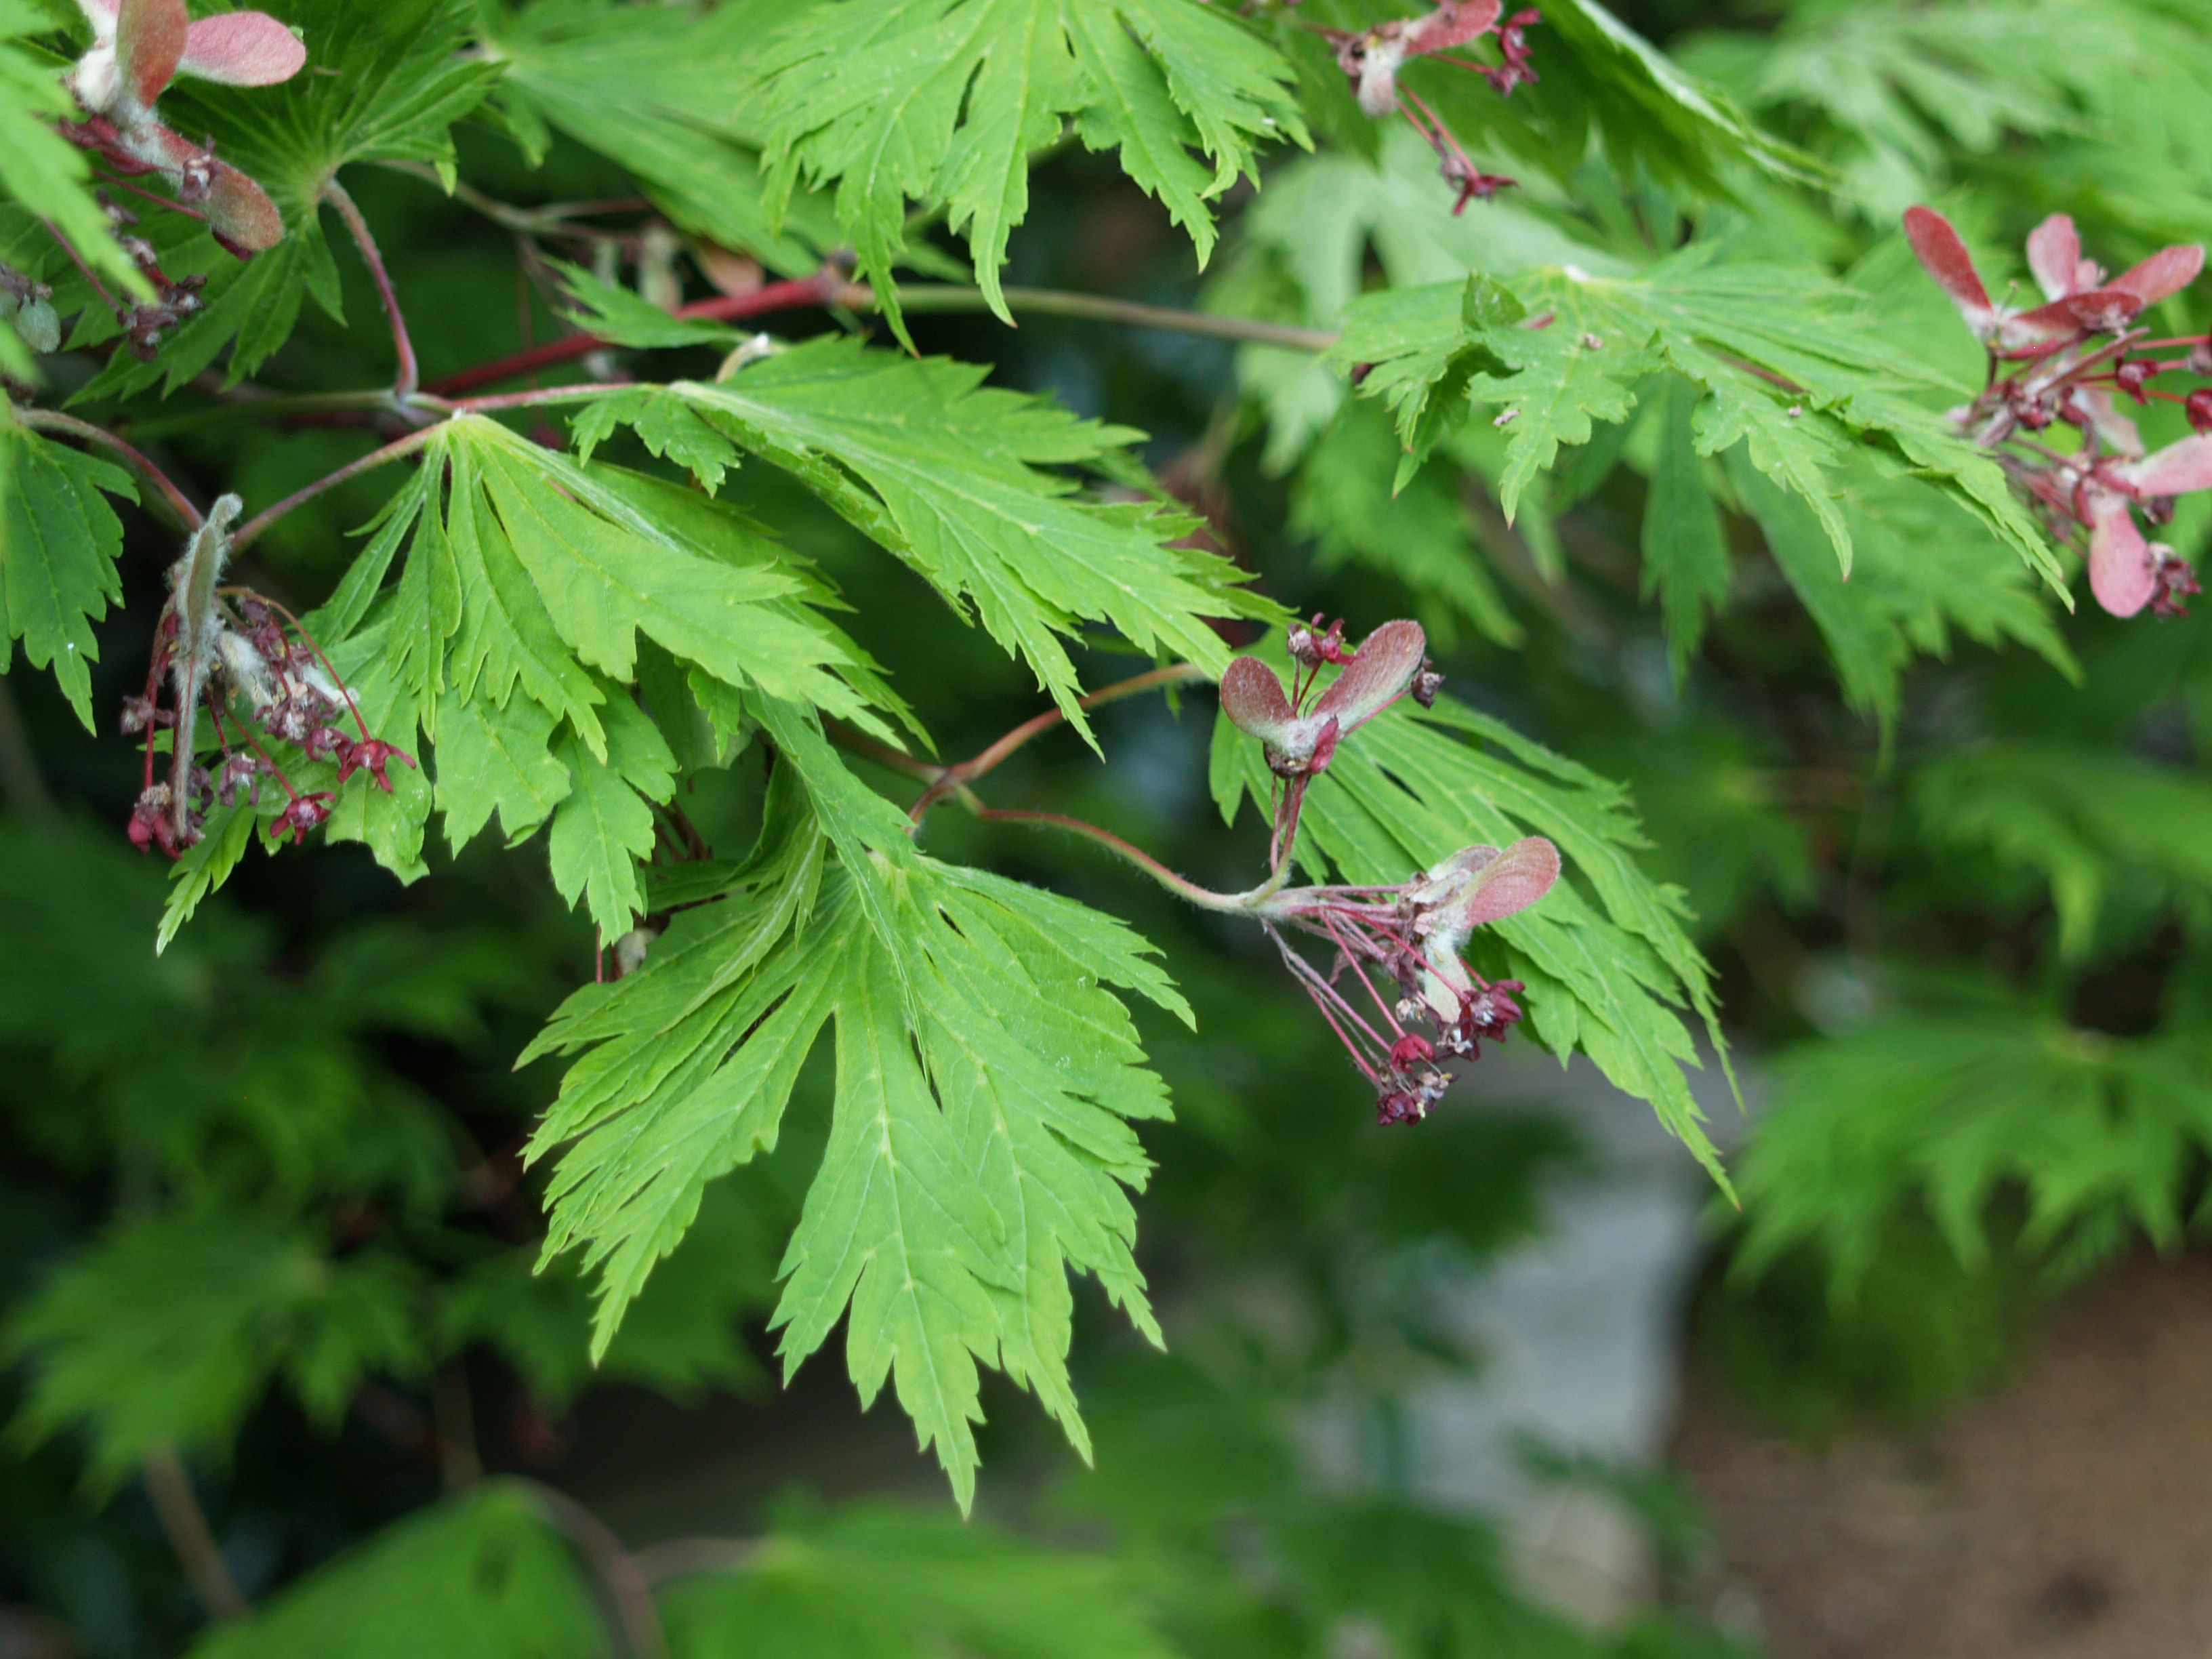 How to care for a fern leaf japanese maple - The Fernleaf Japanese Maple Has Larger Leaves Than Typical Aututumn Foliage Color Is Unsurpassed